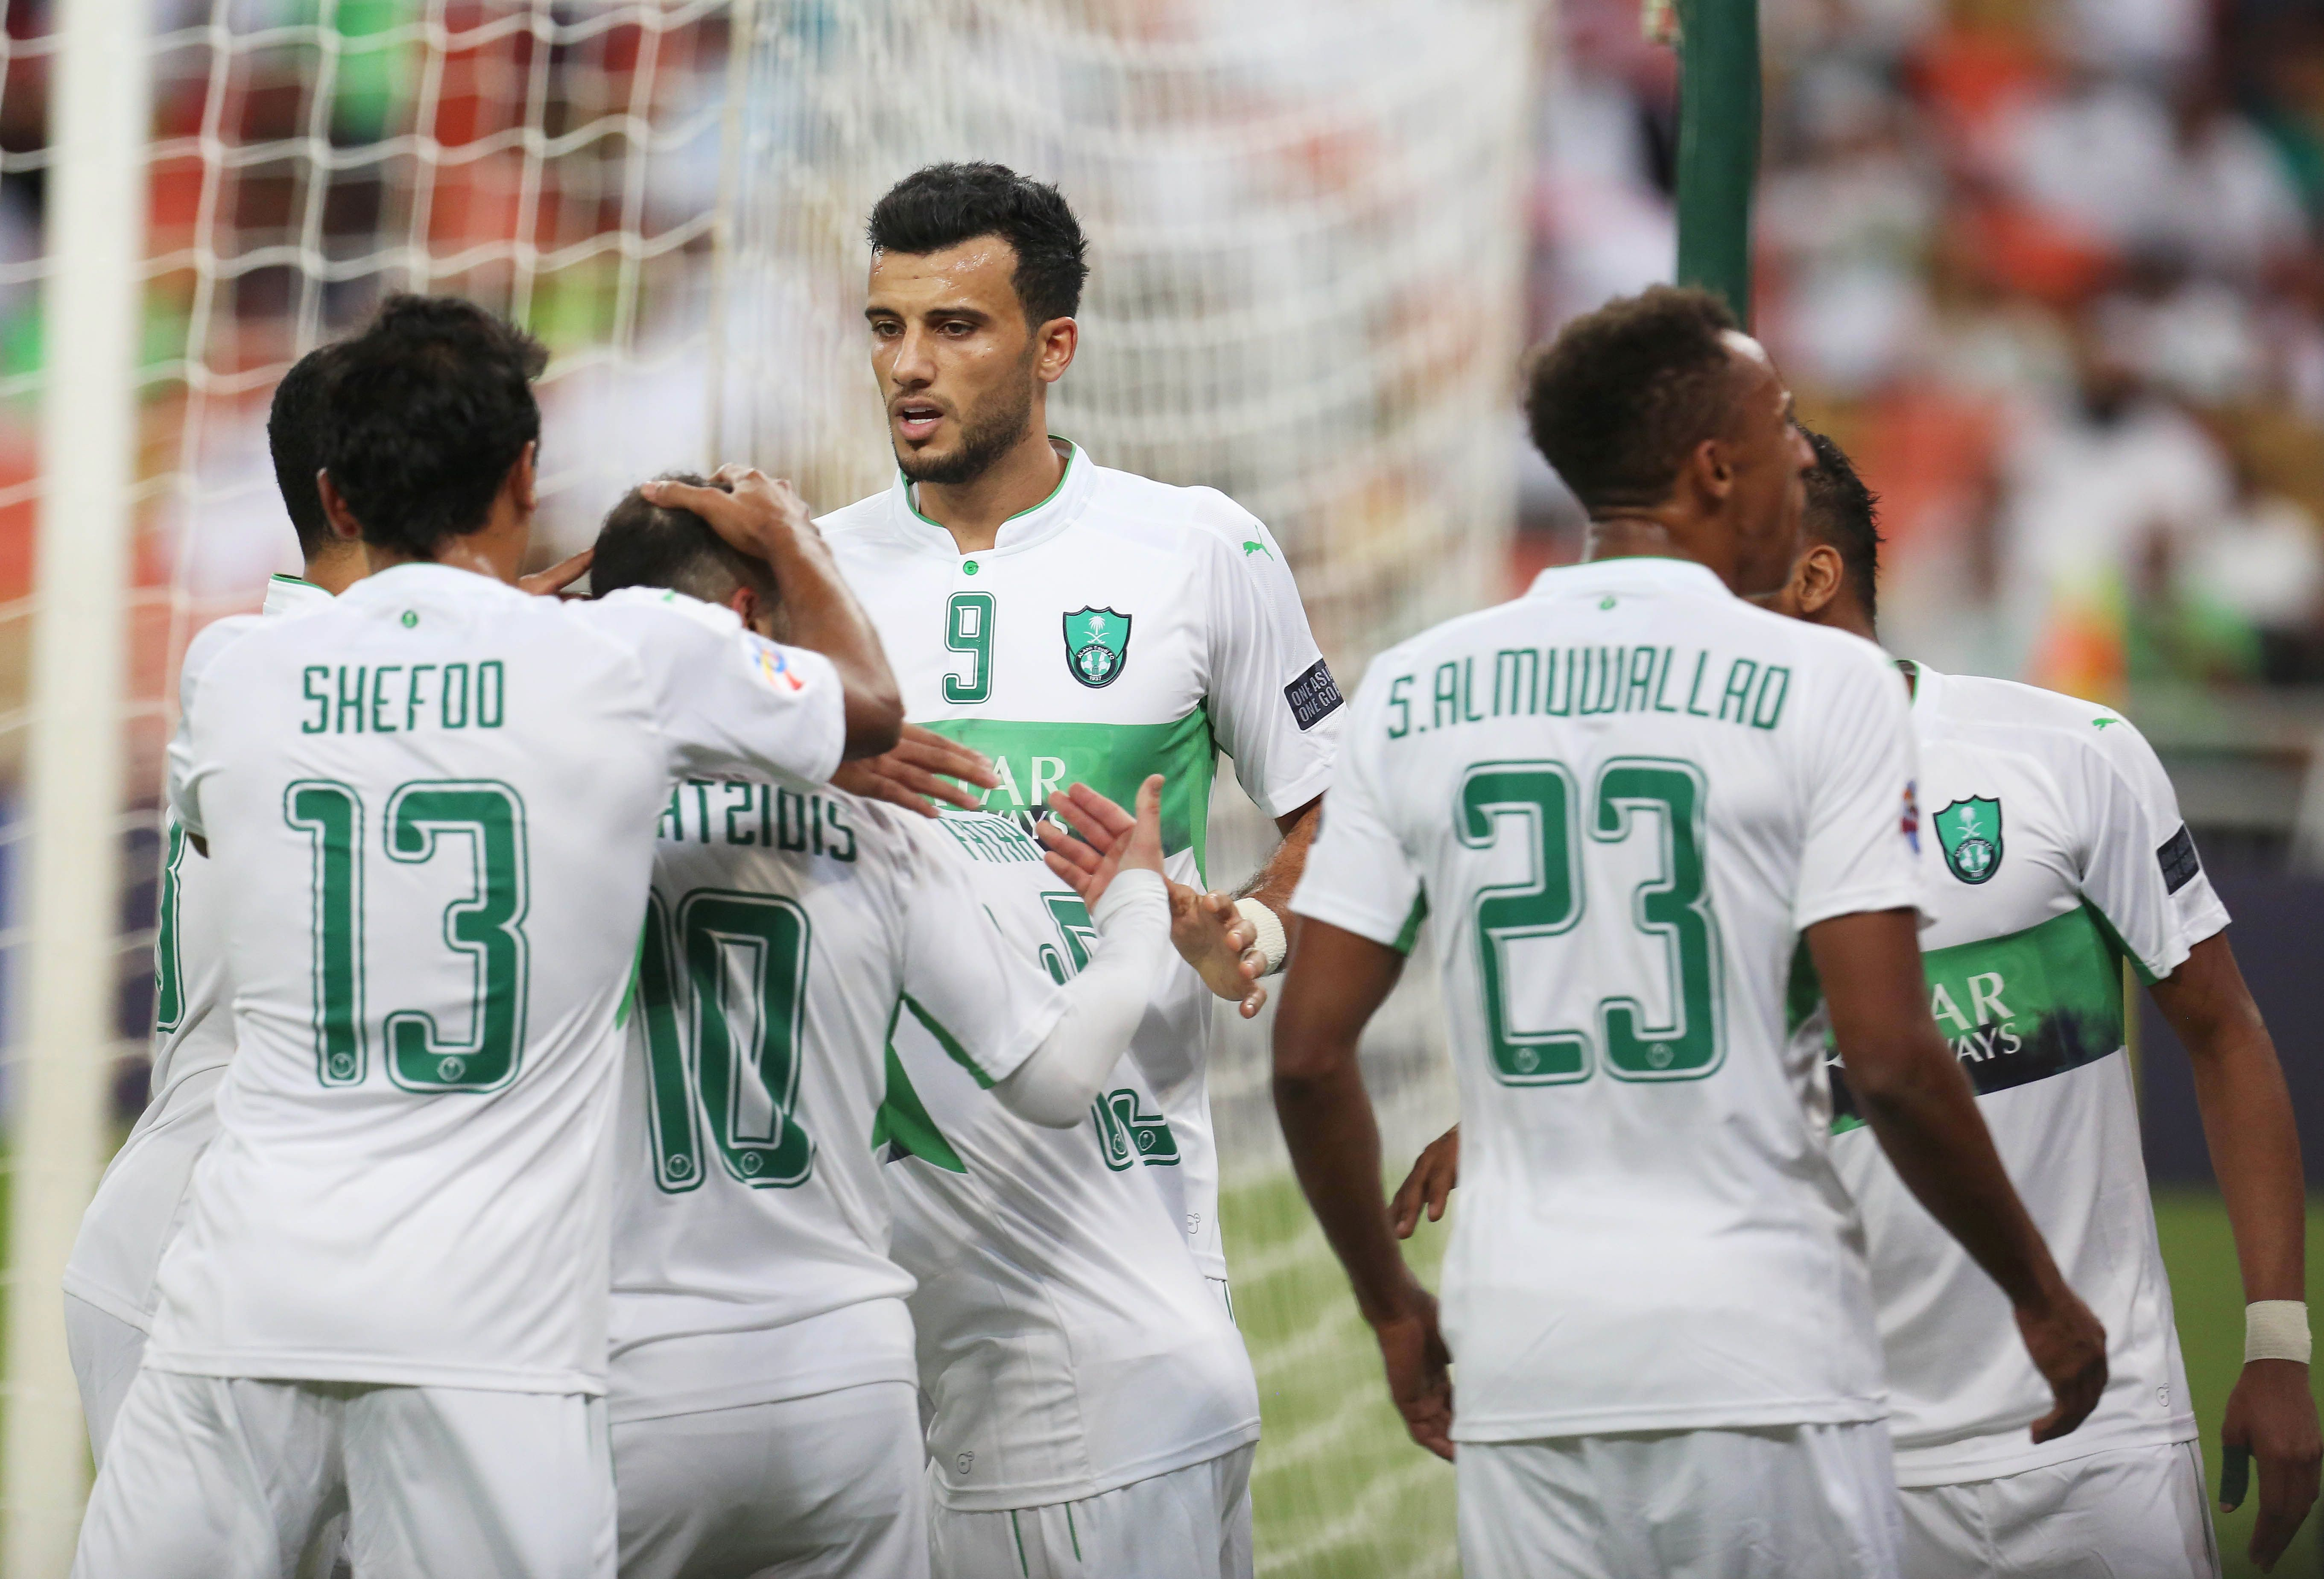 Saudi's Al-Ahli players celebrate after scoring during their AFC Champions League qualifying football match against Uzbekistan's Bunyodkor on February 21, 2017, at King Abdullah Sports city near Jeddah